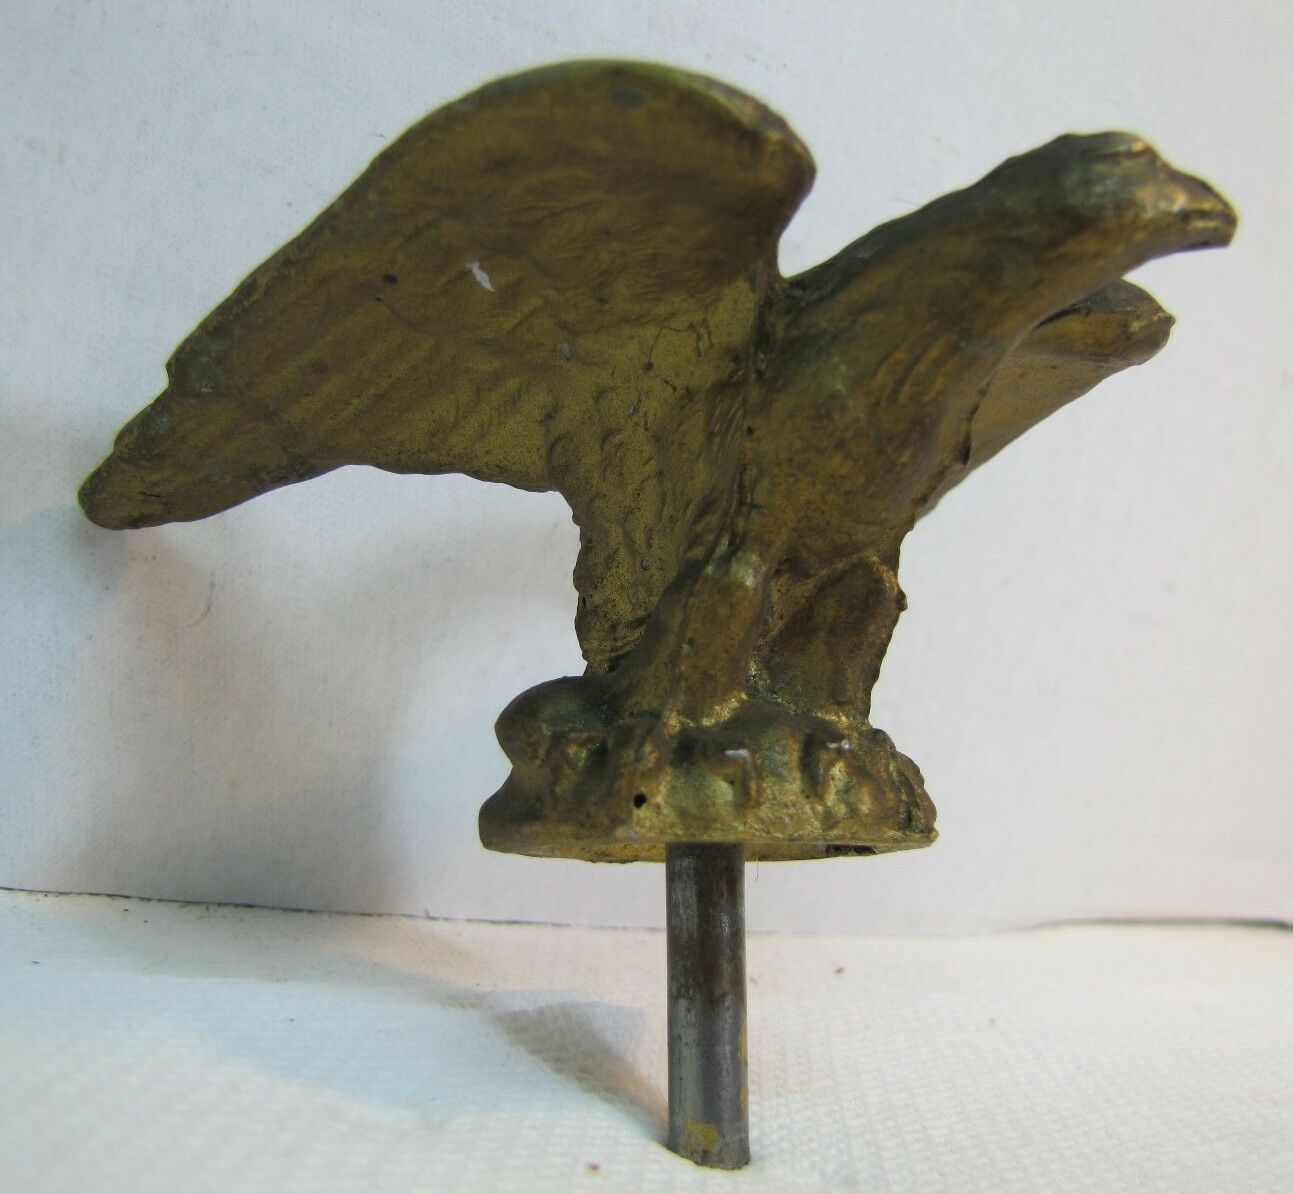 Vintage Figural Eagle Architectural Finial Topper Hardware heavy weighted metal